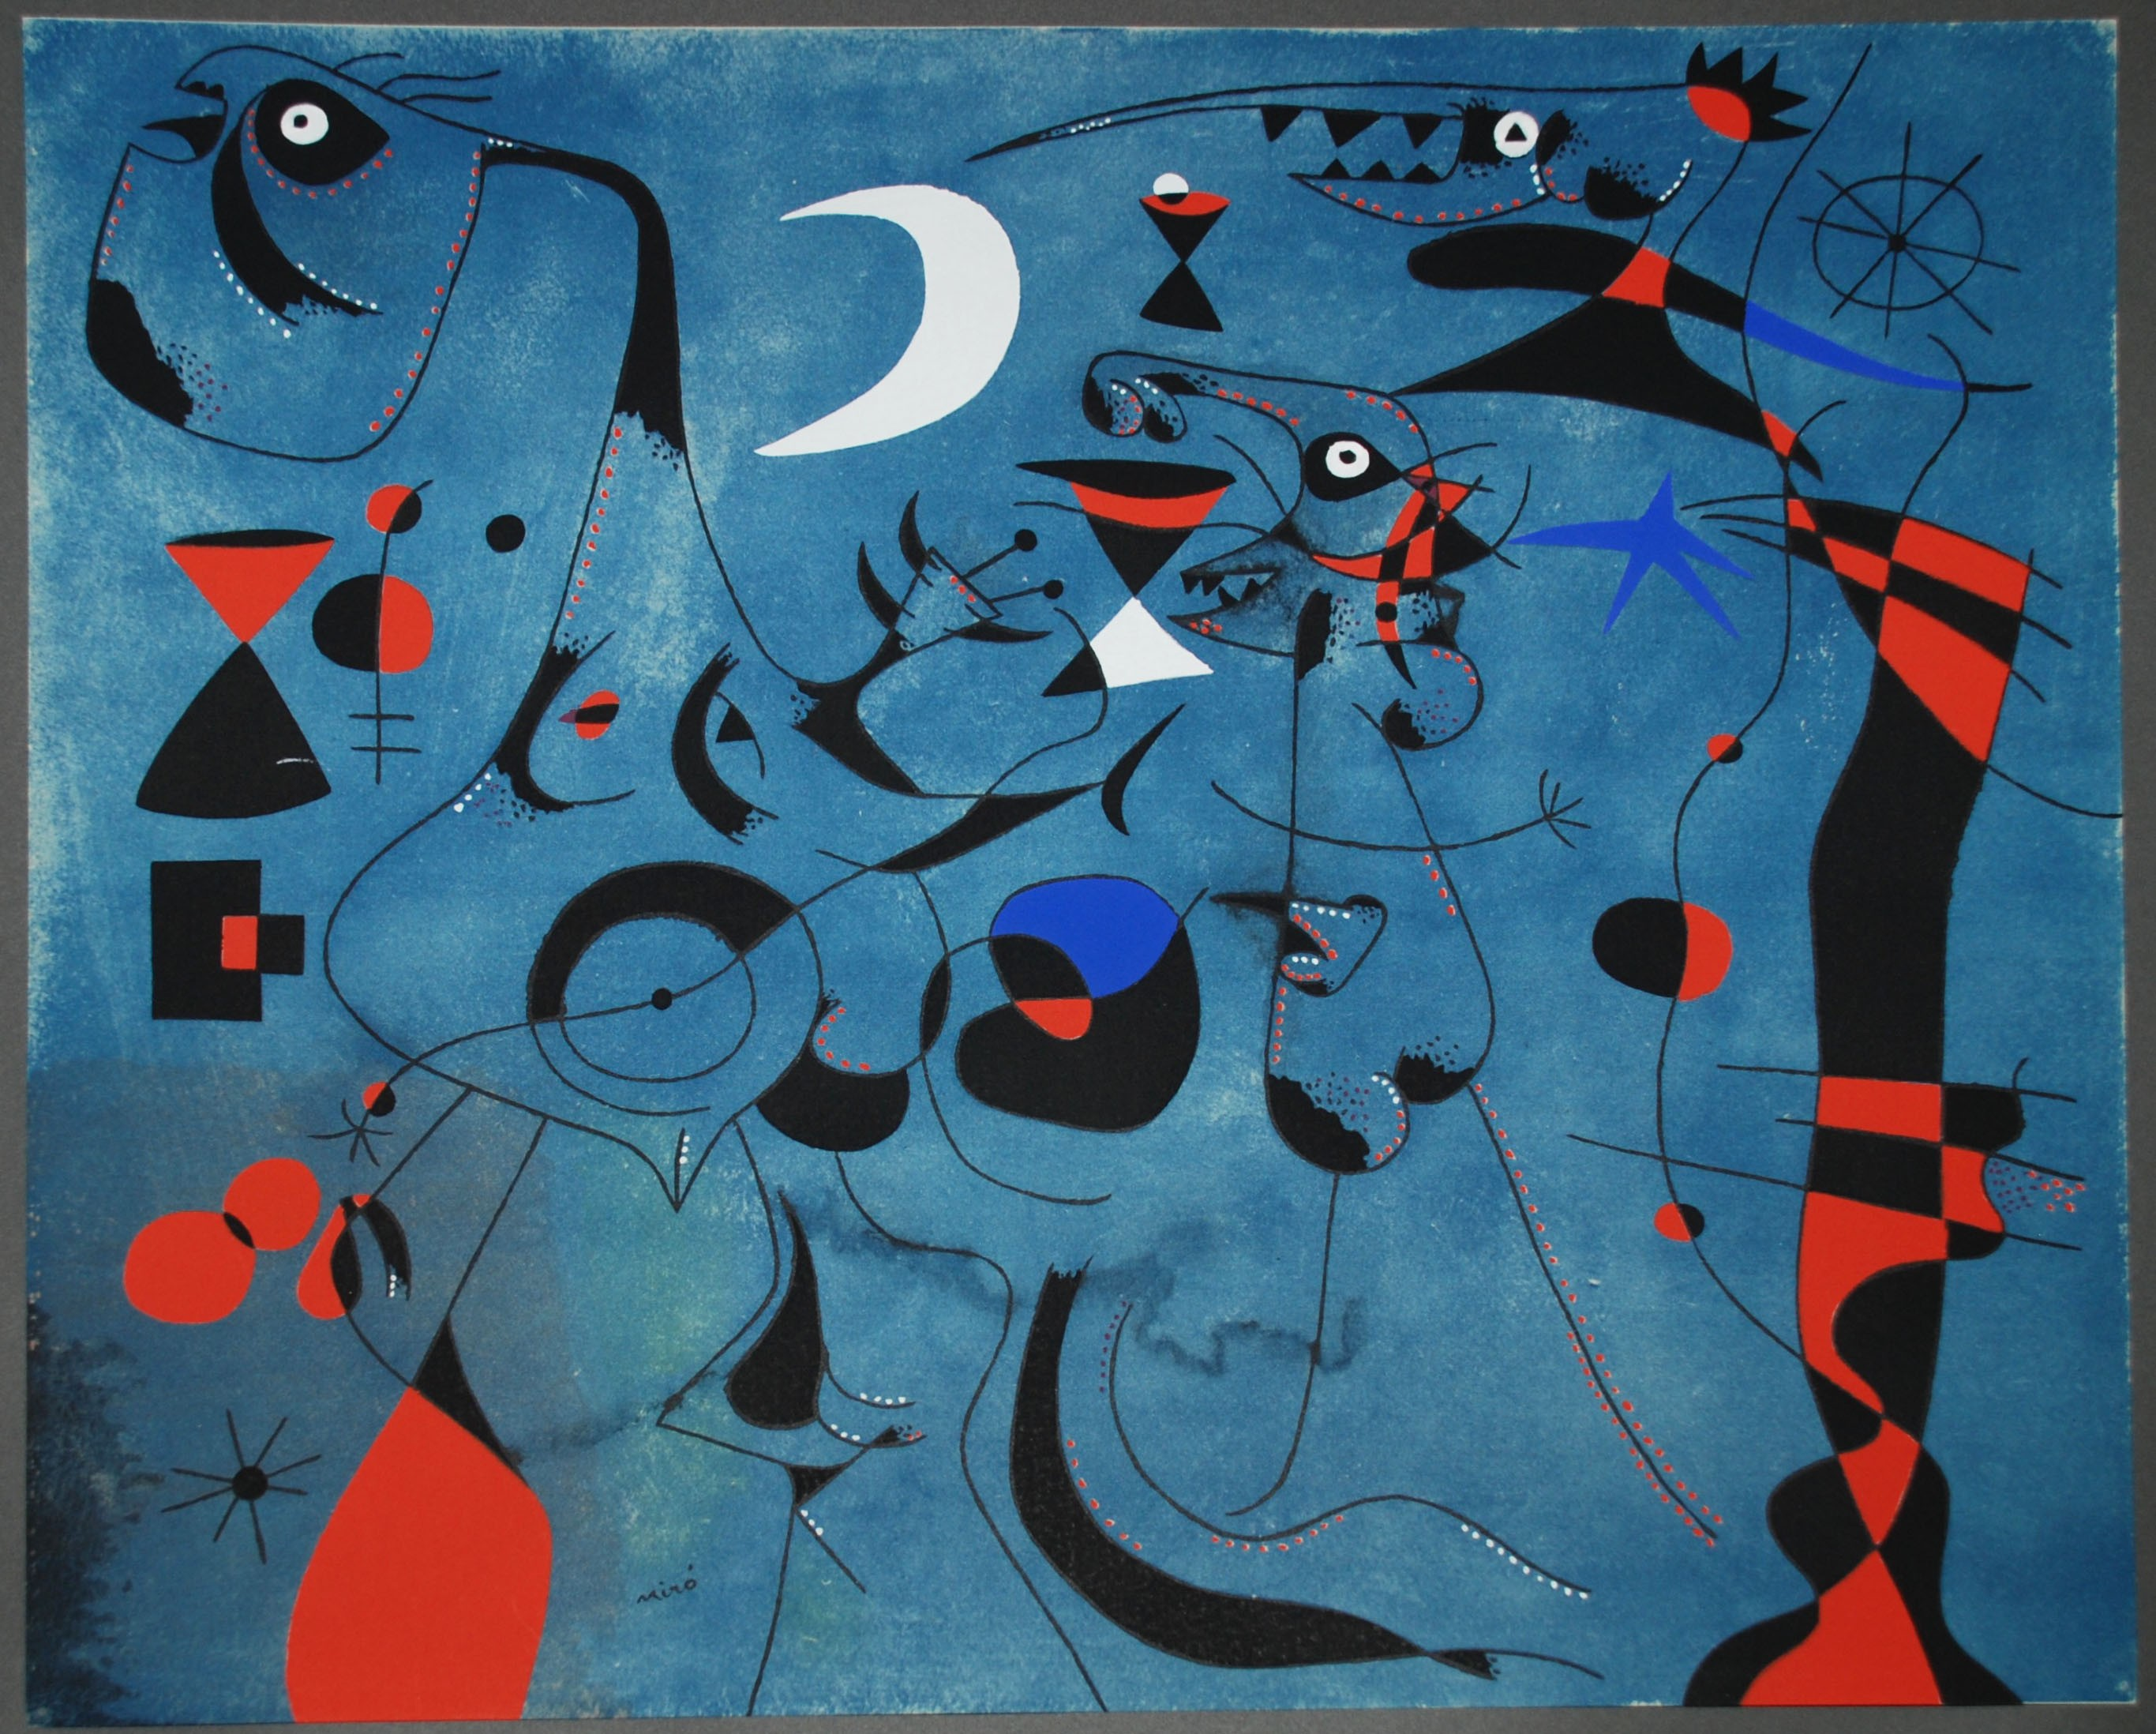 Joan Miro Signed Les Essencies De La Terra Per Miro Large Portfolio Book 16x21